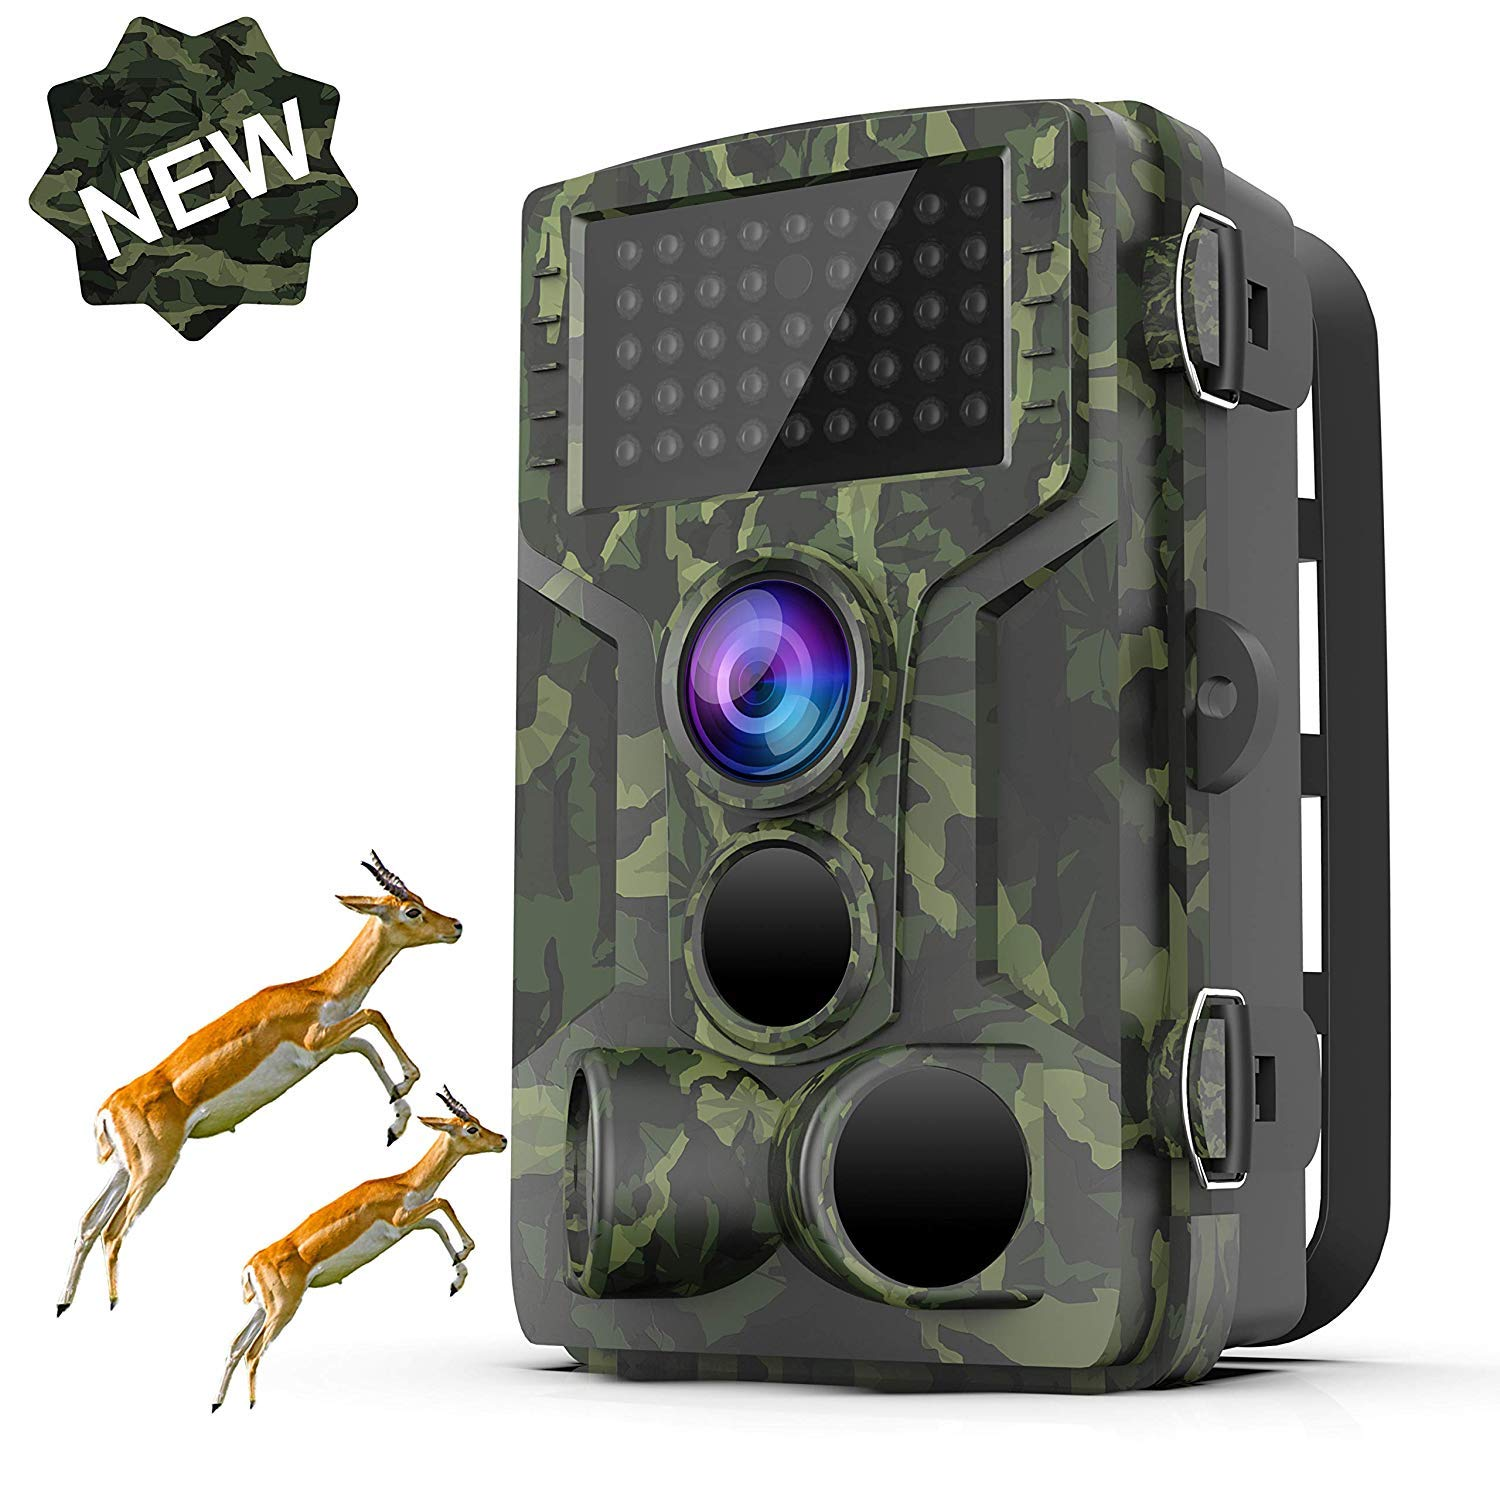 STARLIKE Trail Camera 1080P Waterproof Hunting Scouting Cam for Wildlife Monitoring with Motion Activated Night Vision up to 65ft/20m, 120°Detect Range, 36pcs 940 Infared LEDs, 0.3s Trigger Speed by STARLIKE